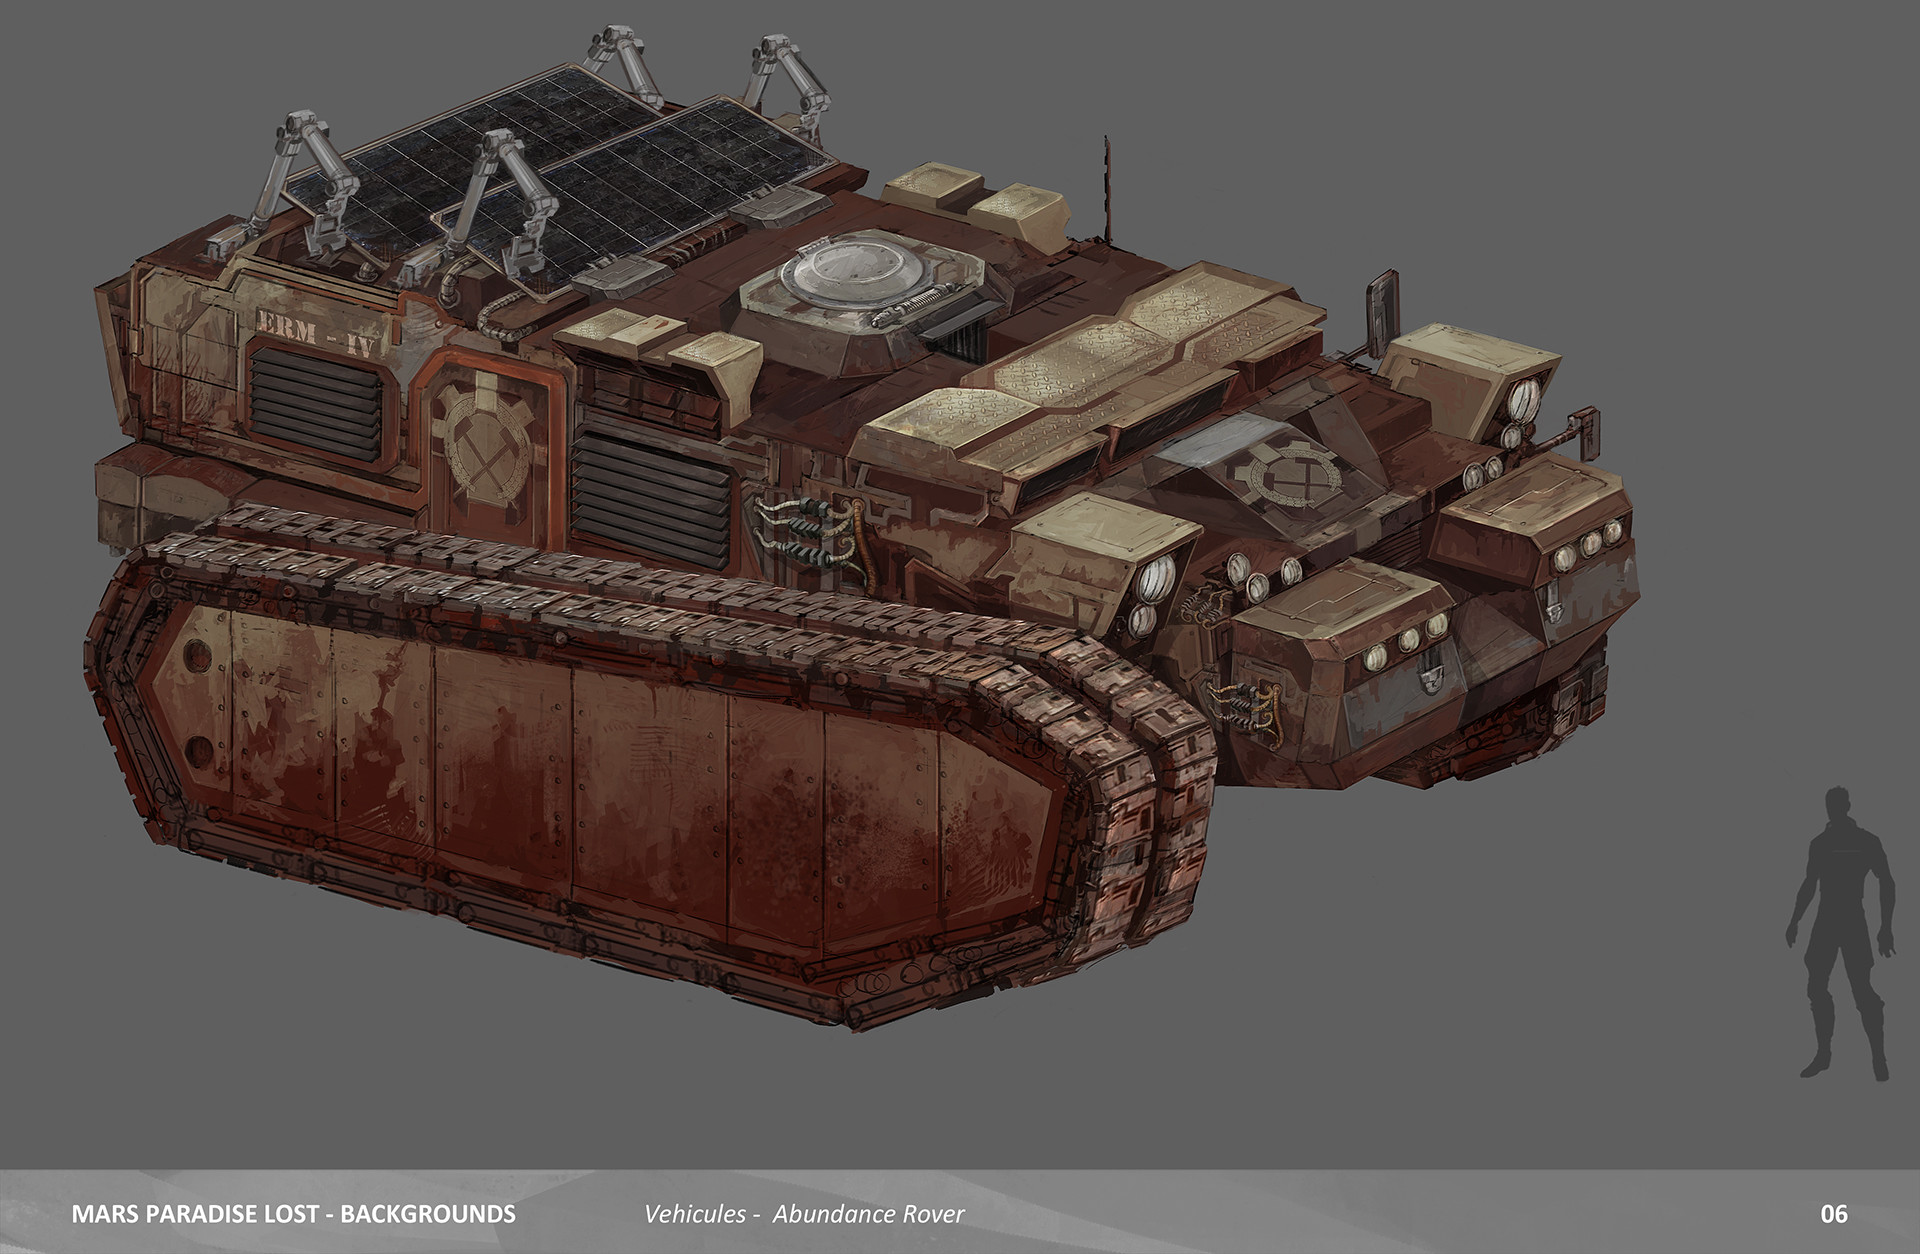 Alexandre chaudret mpl backgrounds vehicules rover06